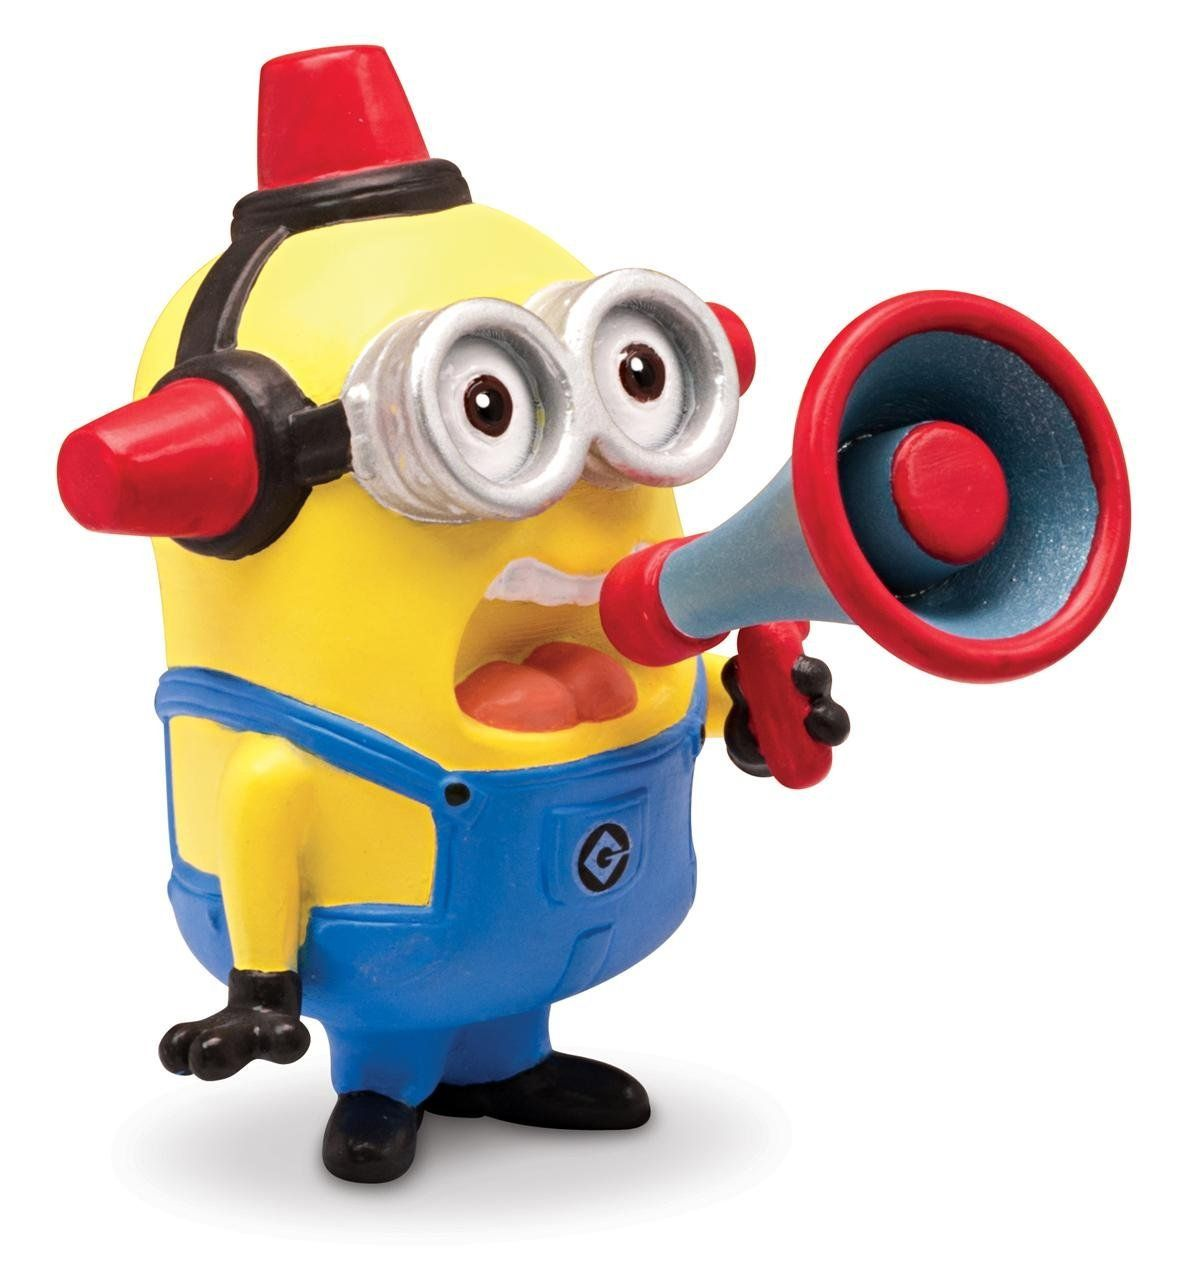 Minion Toys And Games : Amazon despicable me minion fireman w speaker